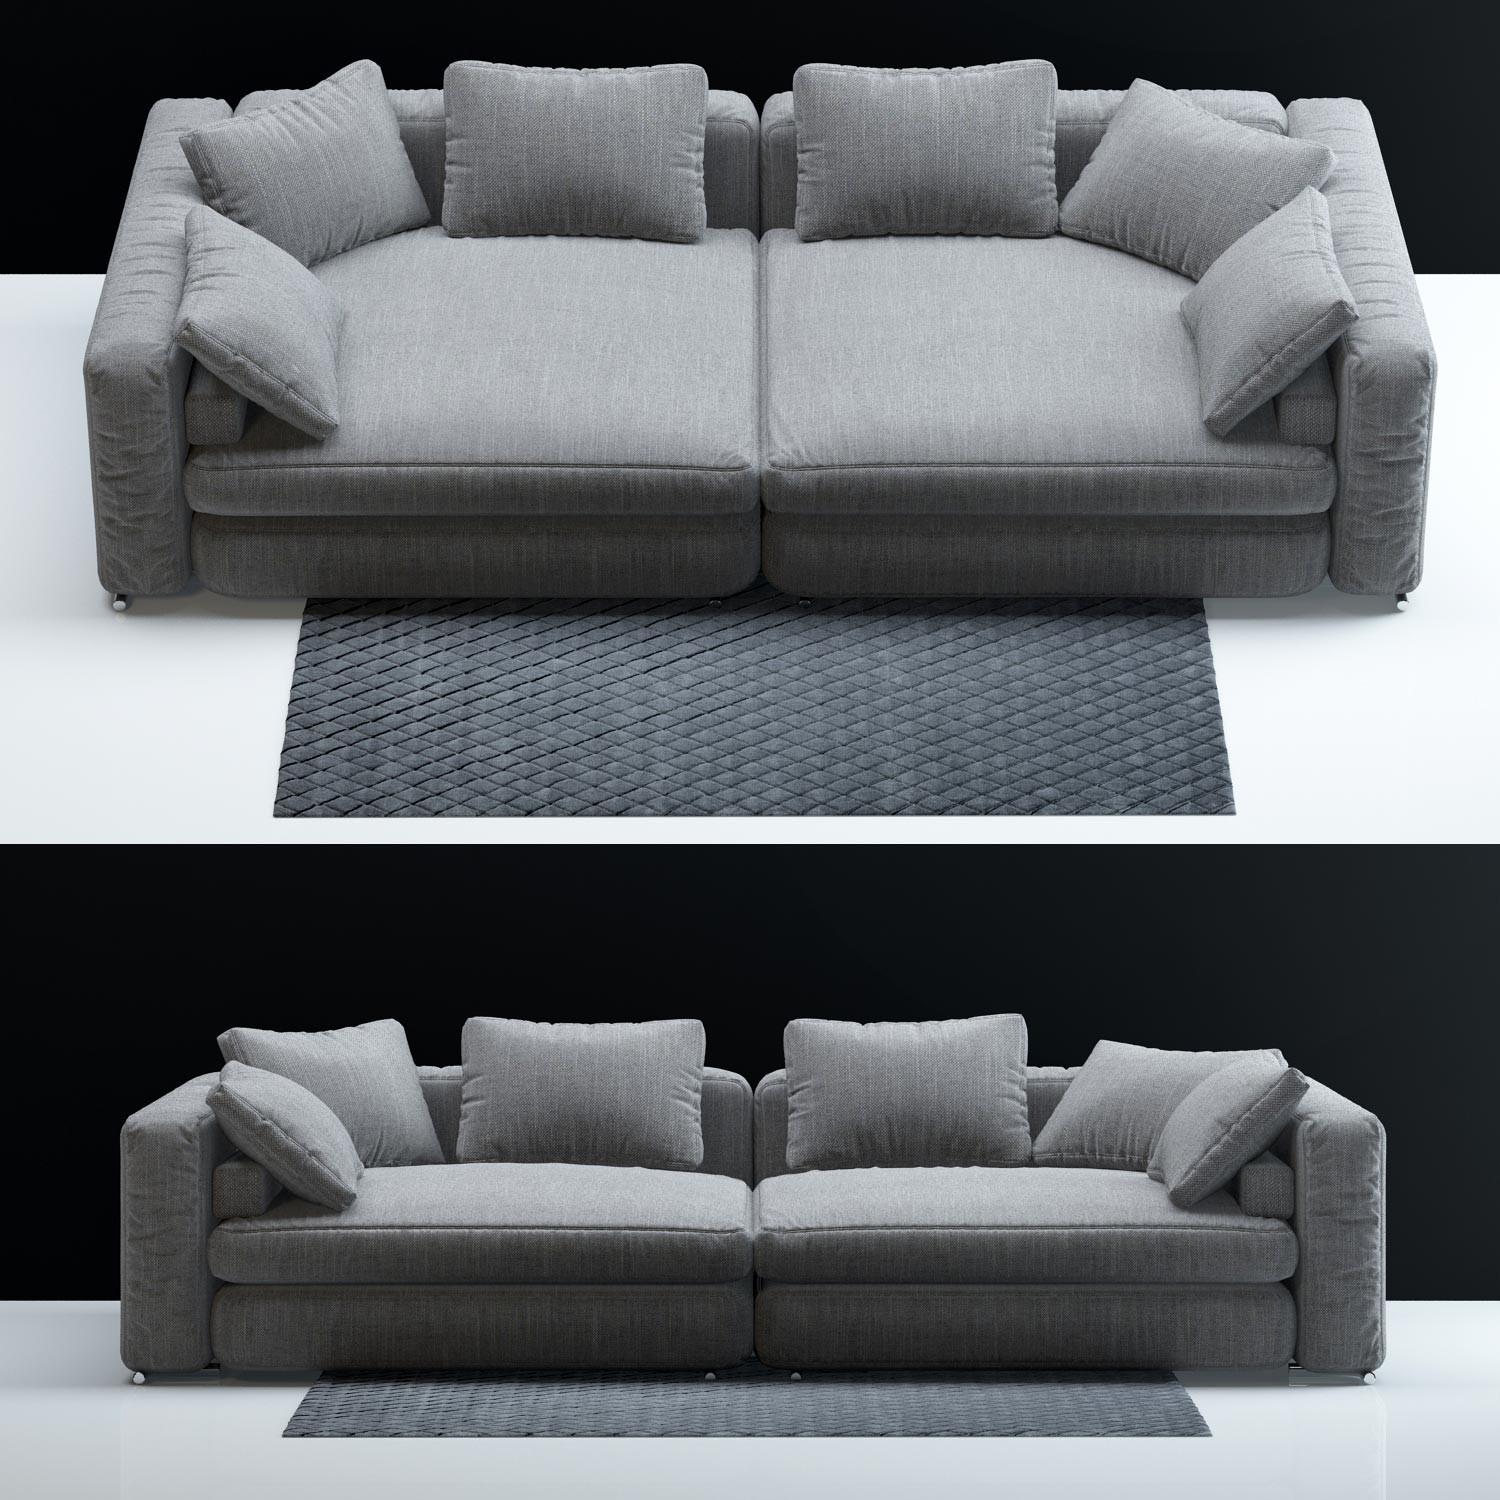 Full Size of Minotti Sofa Alexander Dimensions Freeman Used For Sale Seating System Outlet Couch List India Konfigurator Baxter Erpo Grün Led Mit Verstellbarer Sitztiefe Sofa Minotti Sofa